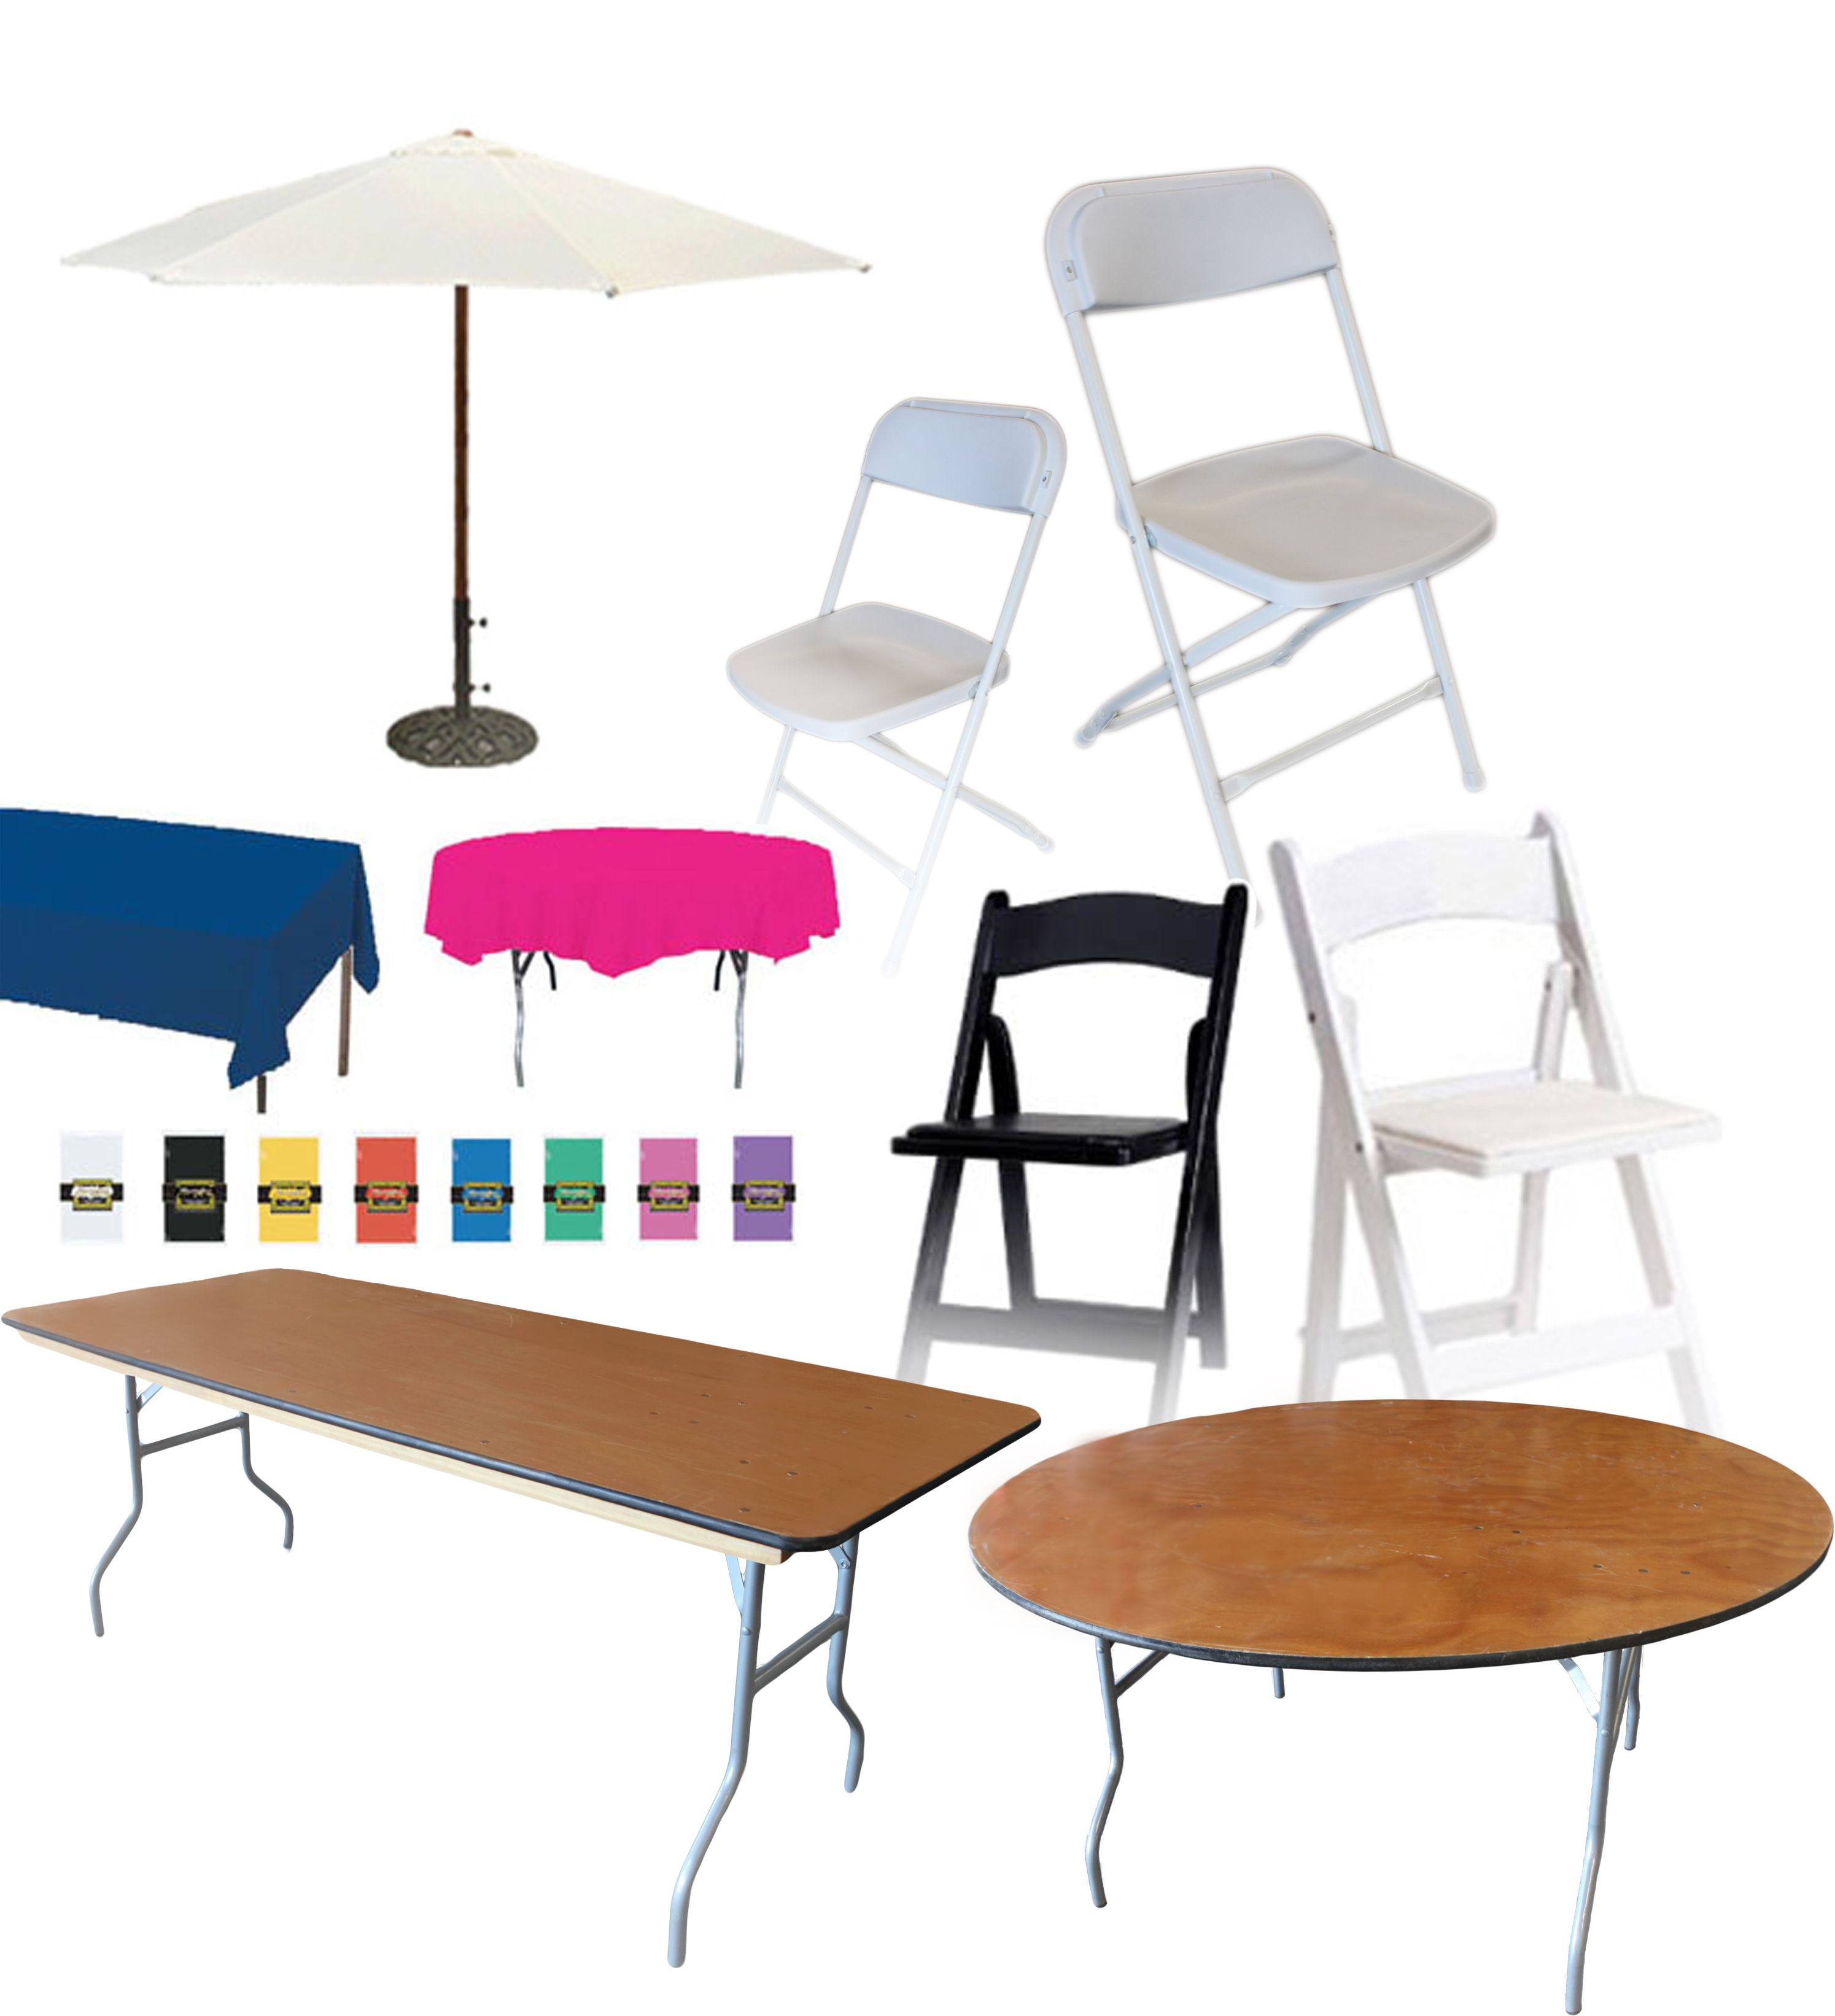 Where Can I Rent Tables And Chairs Table Chair Tents Umbrellas Linen Rentals Call 800 873 8989 To